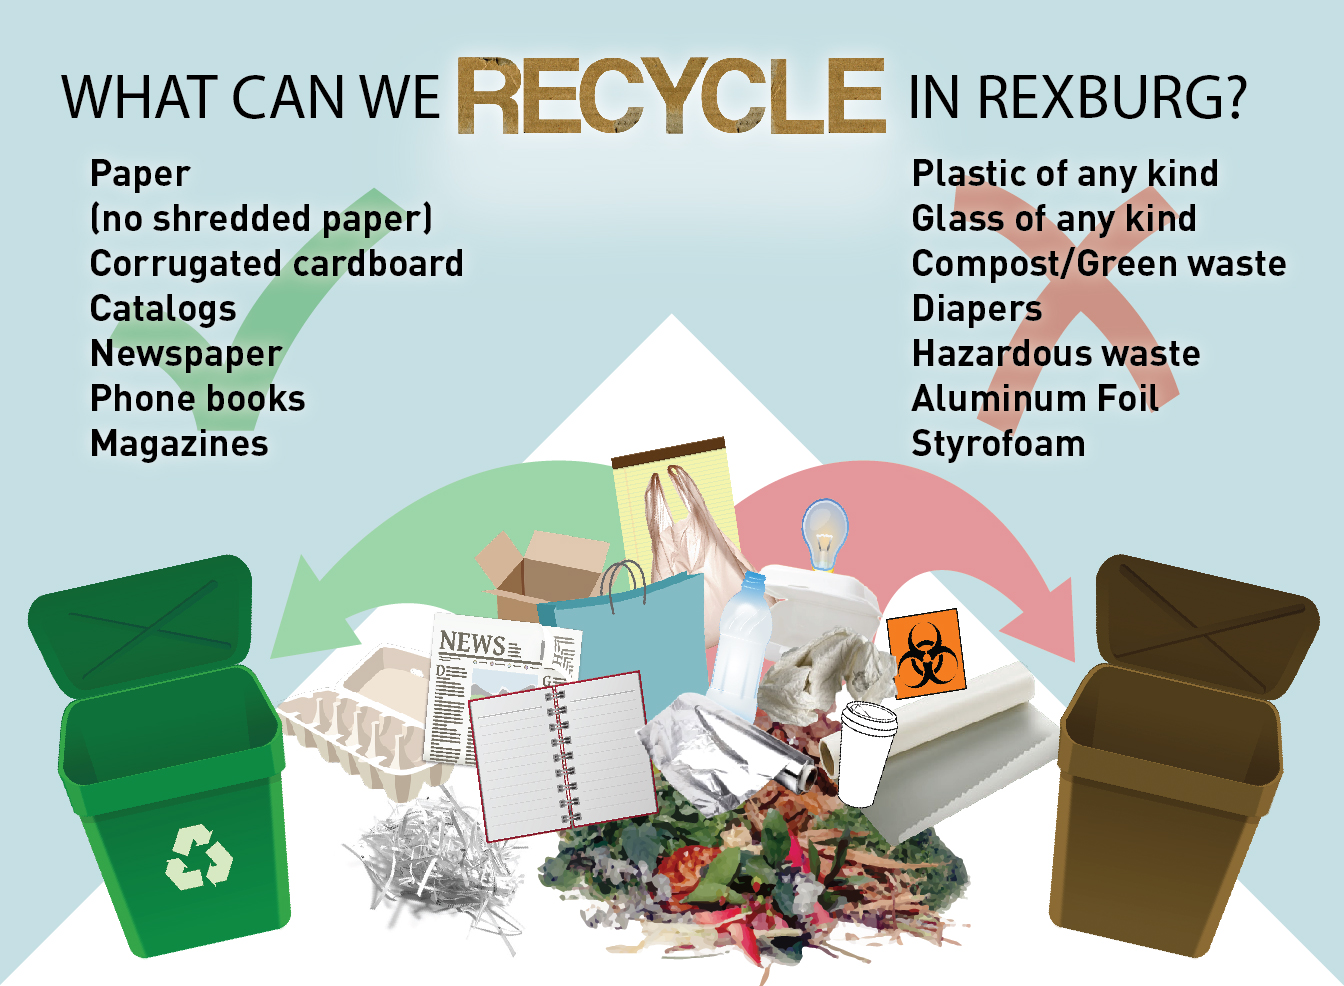 Rexburg changes recycling options